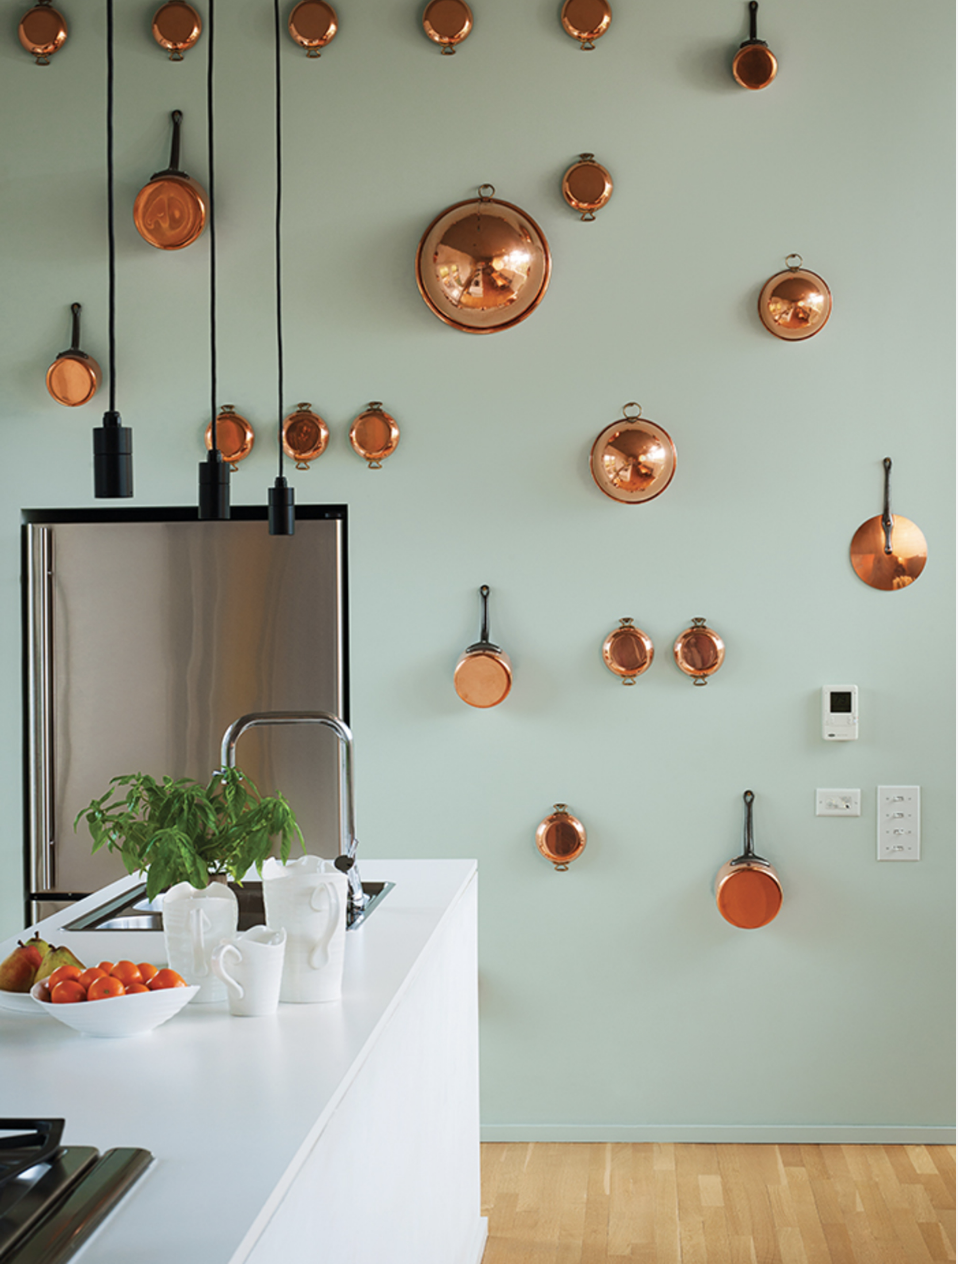 A wall of artfully arranged copper pots with a contrasting paint color makes a bold statement in a small space.